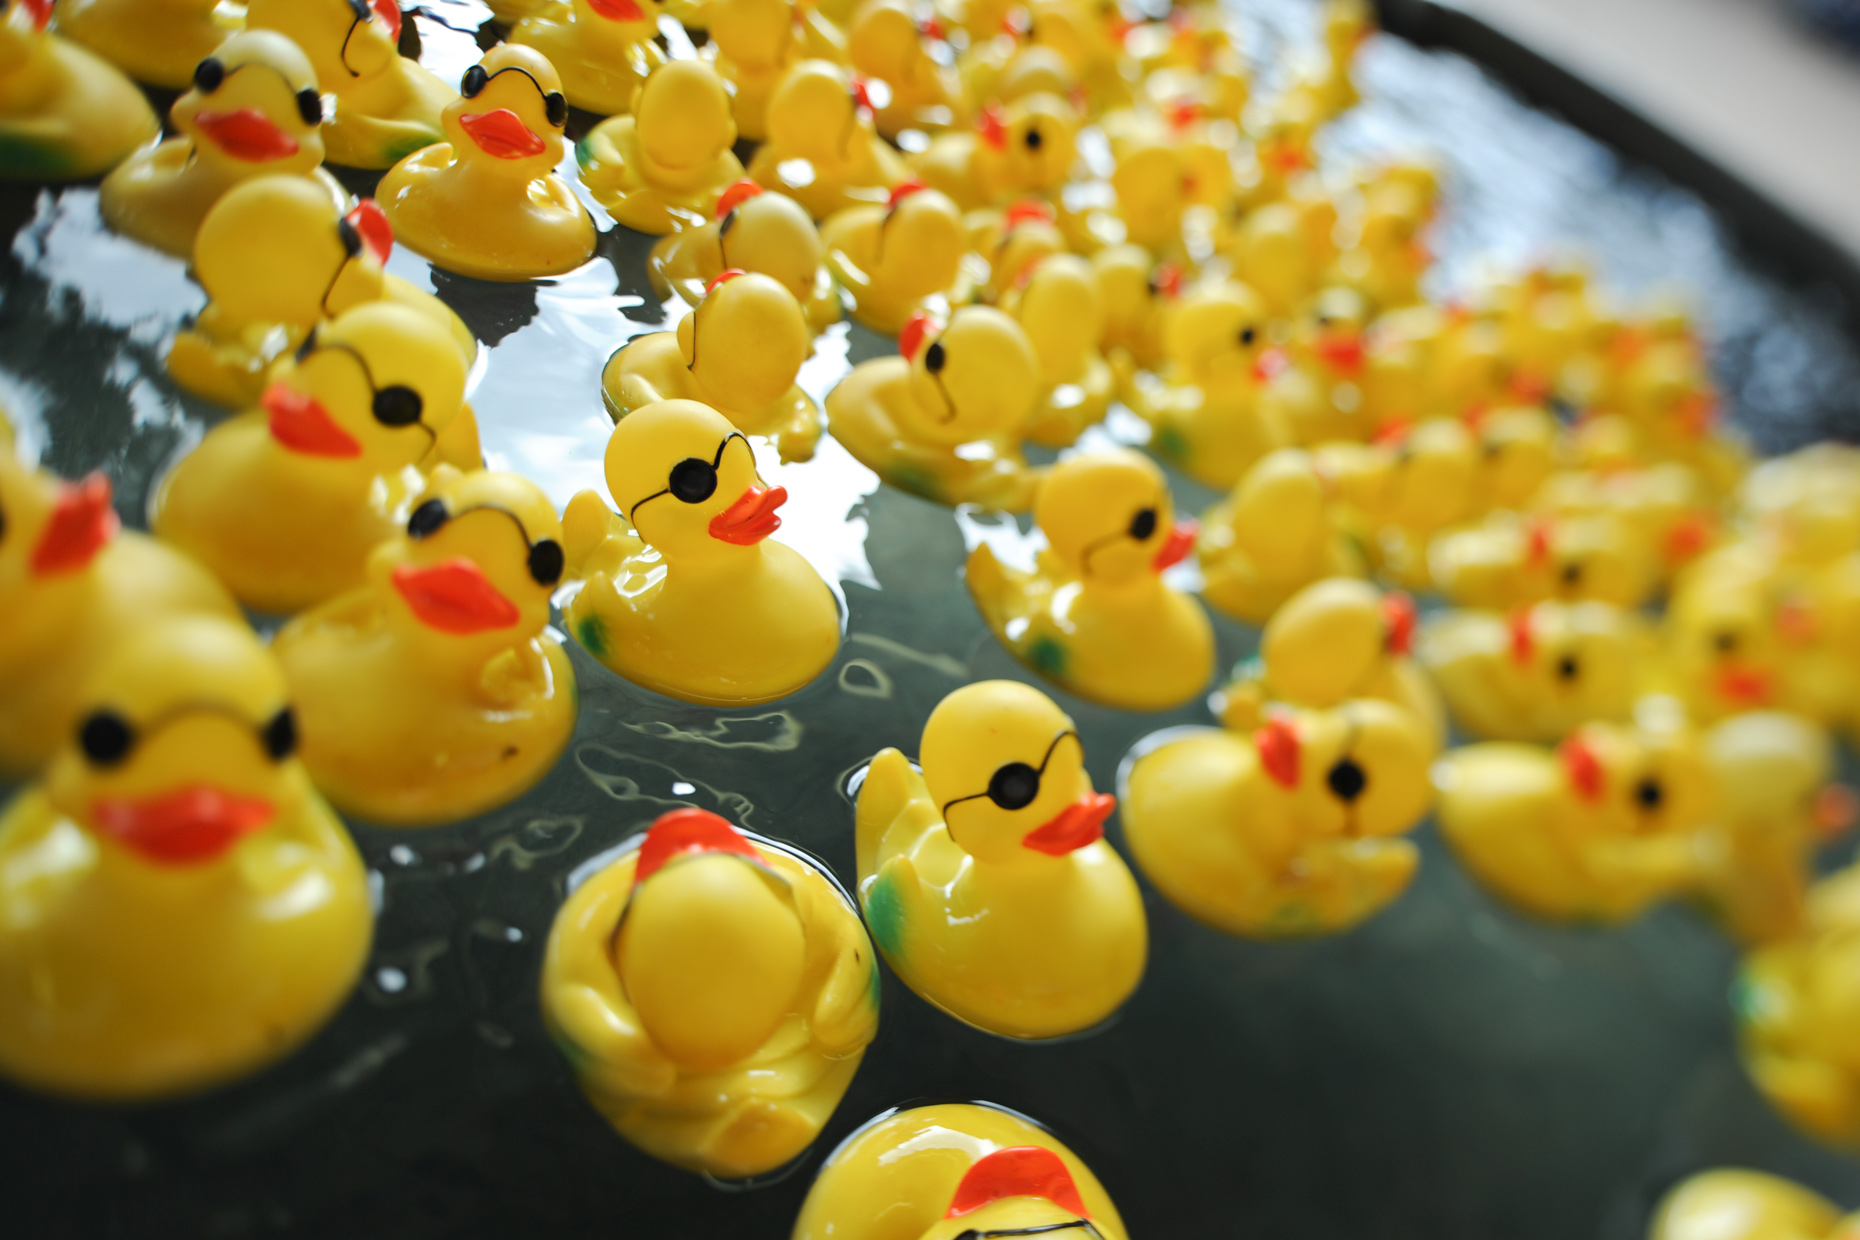 Rubber ducks on the midway at The State Fair of Texas. Photography by Kevin Brown